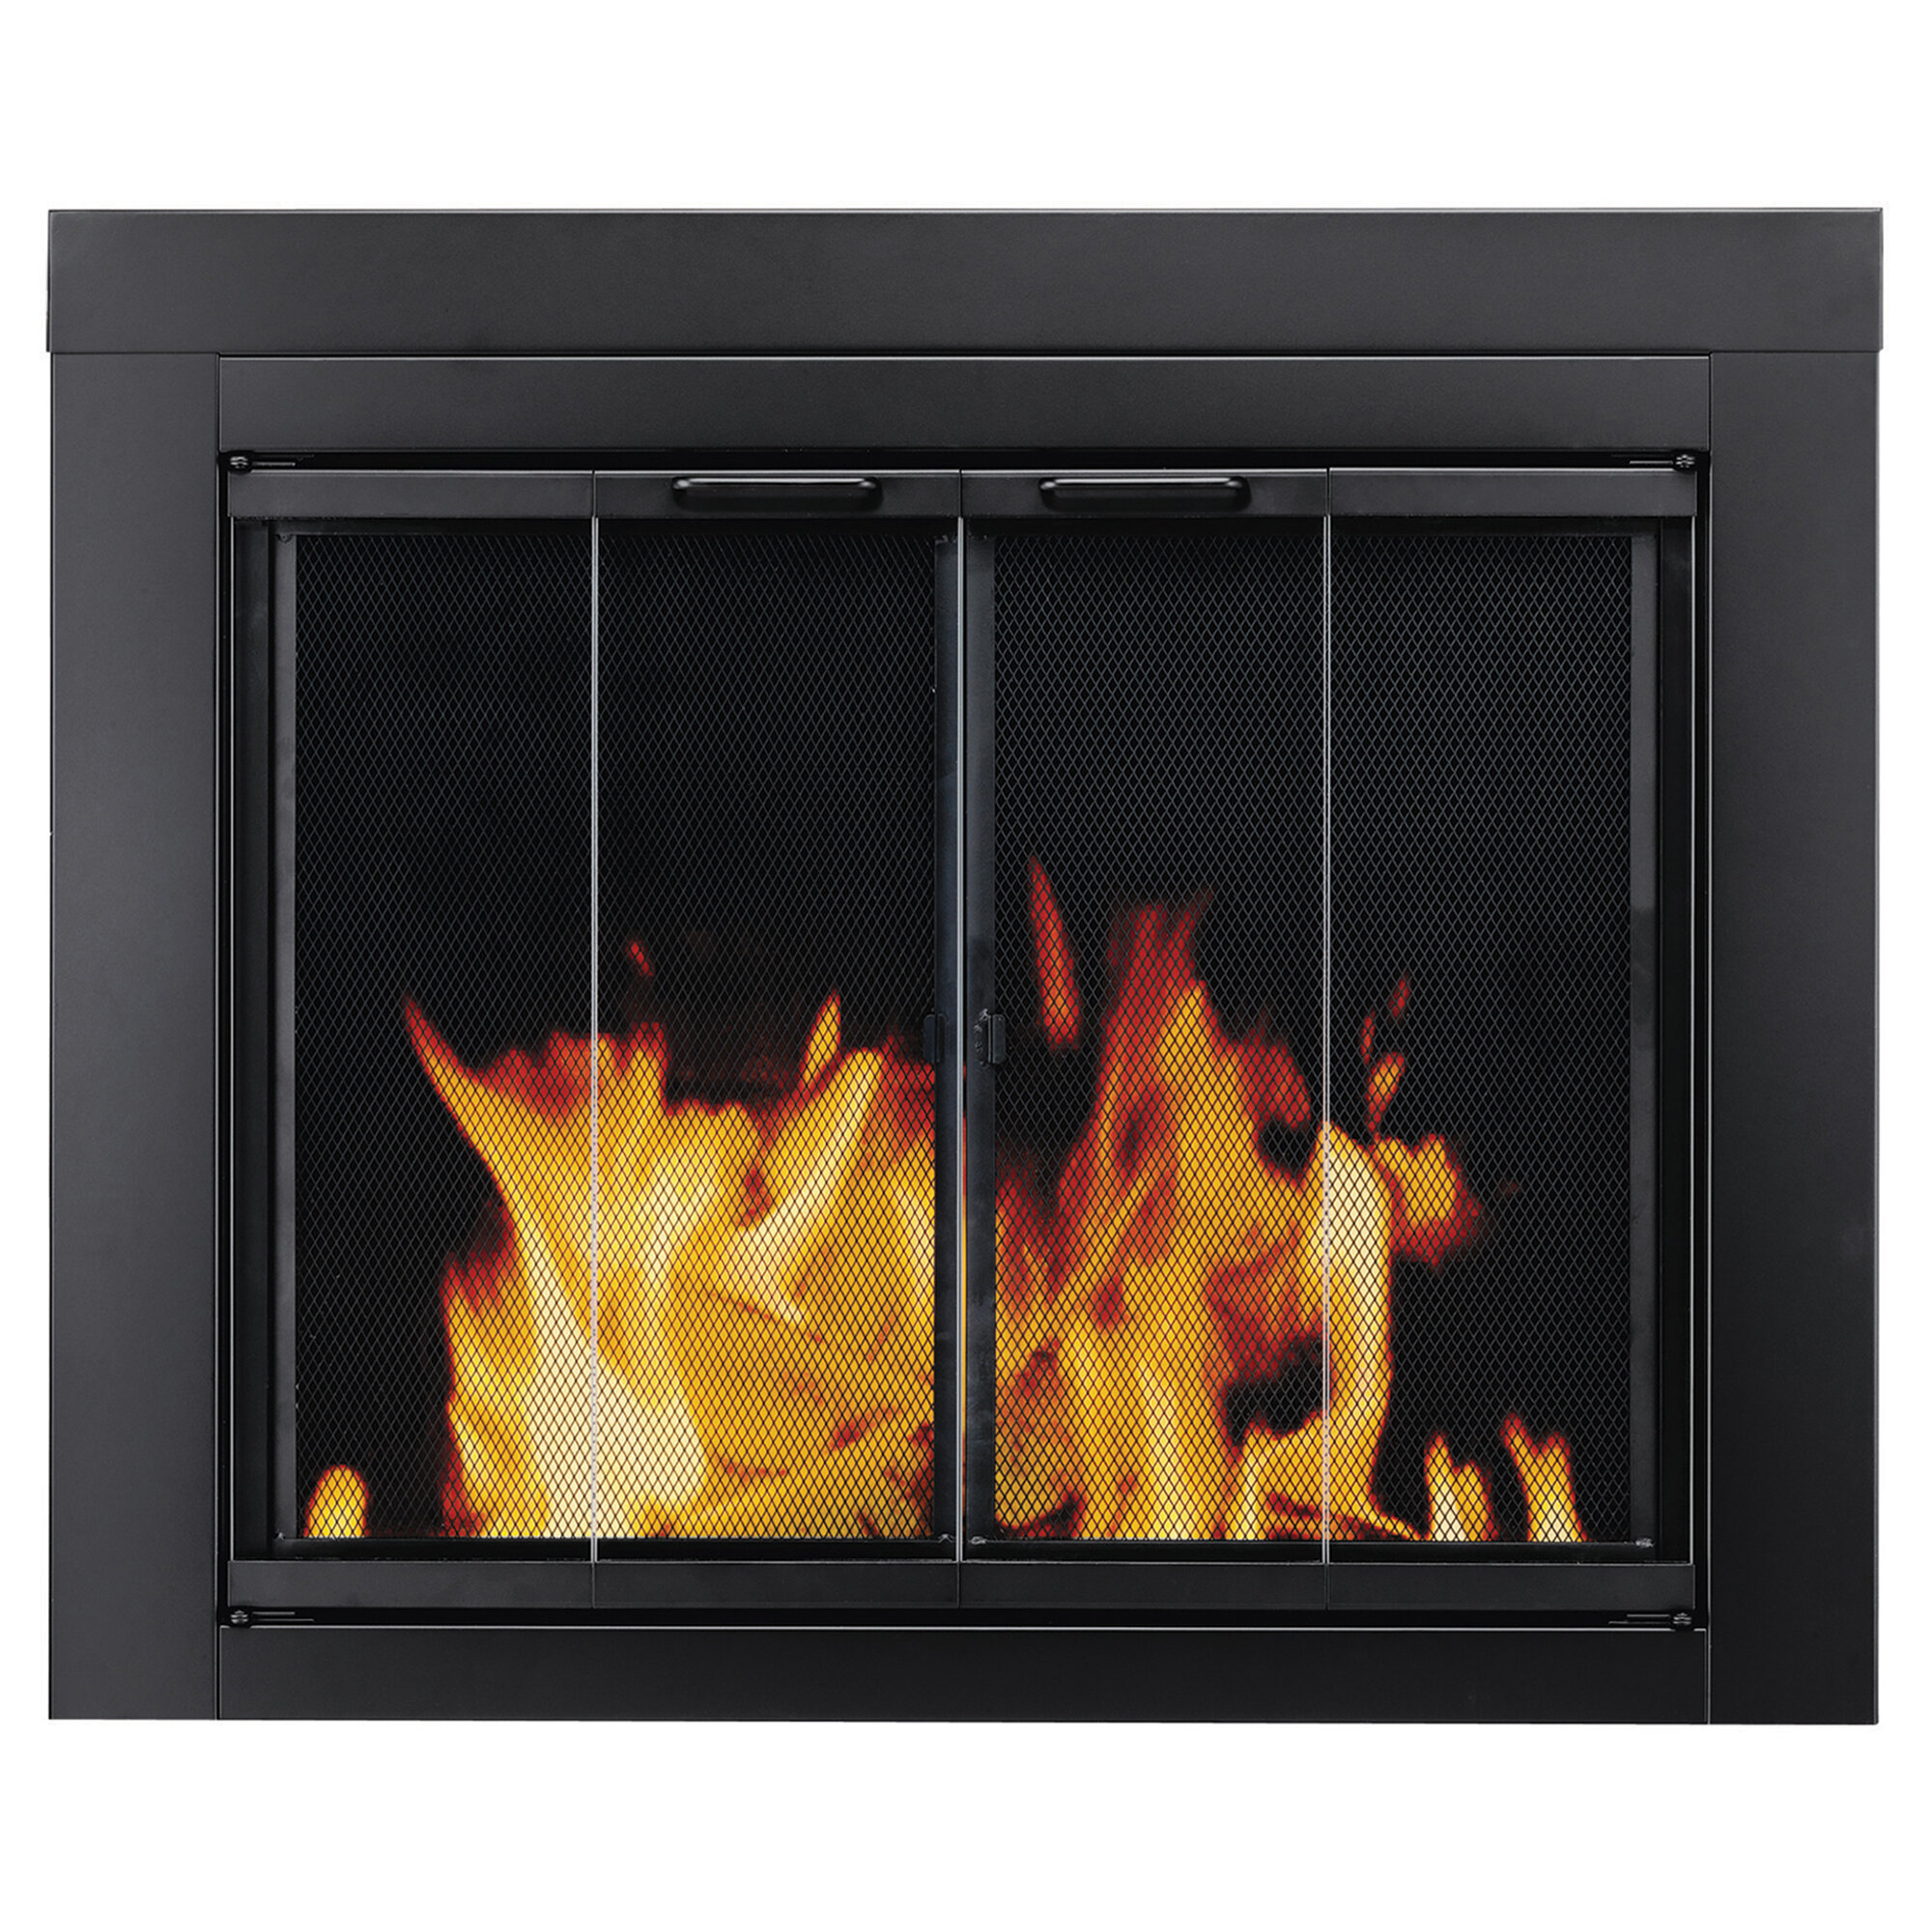 Strange Find The Perfect Bifold Fireplace Screens Wayfair Home Interior And Landscaping Ologienasavecom